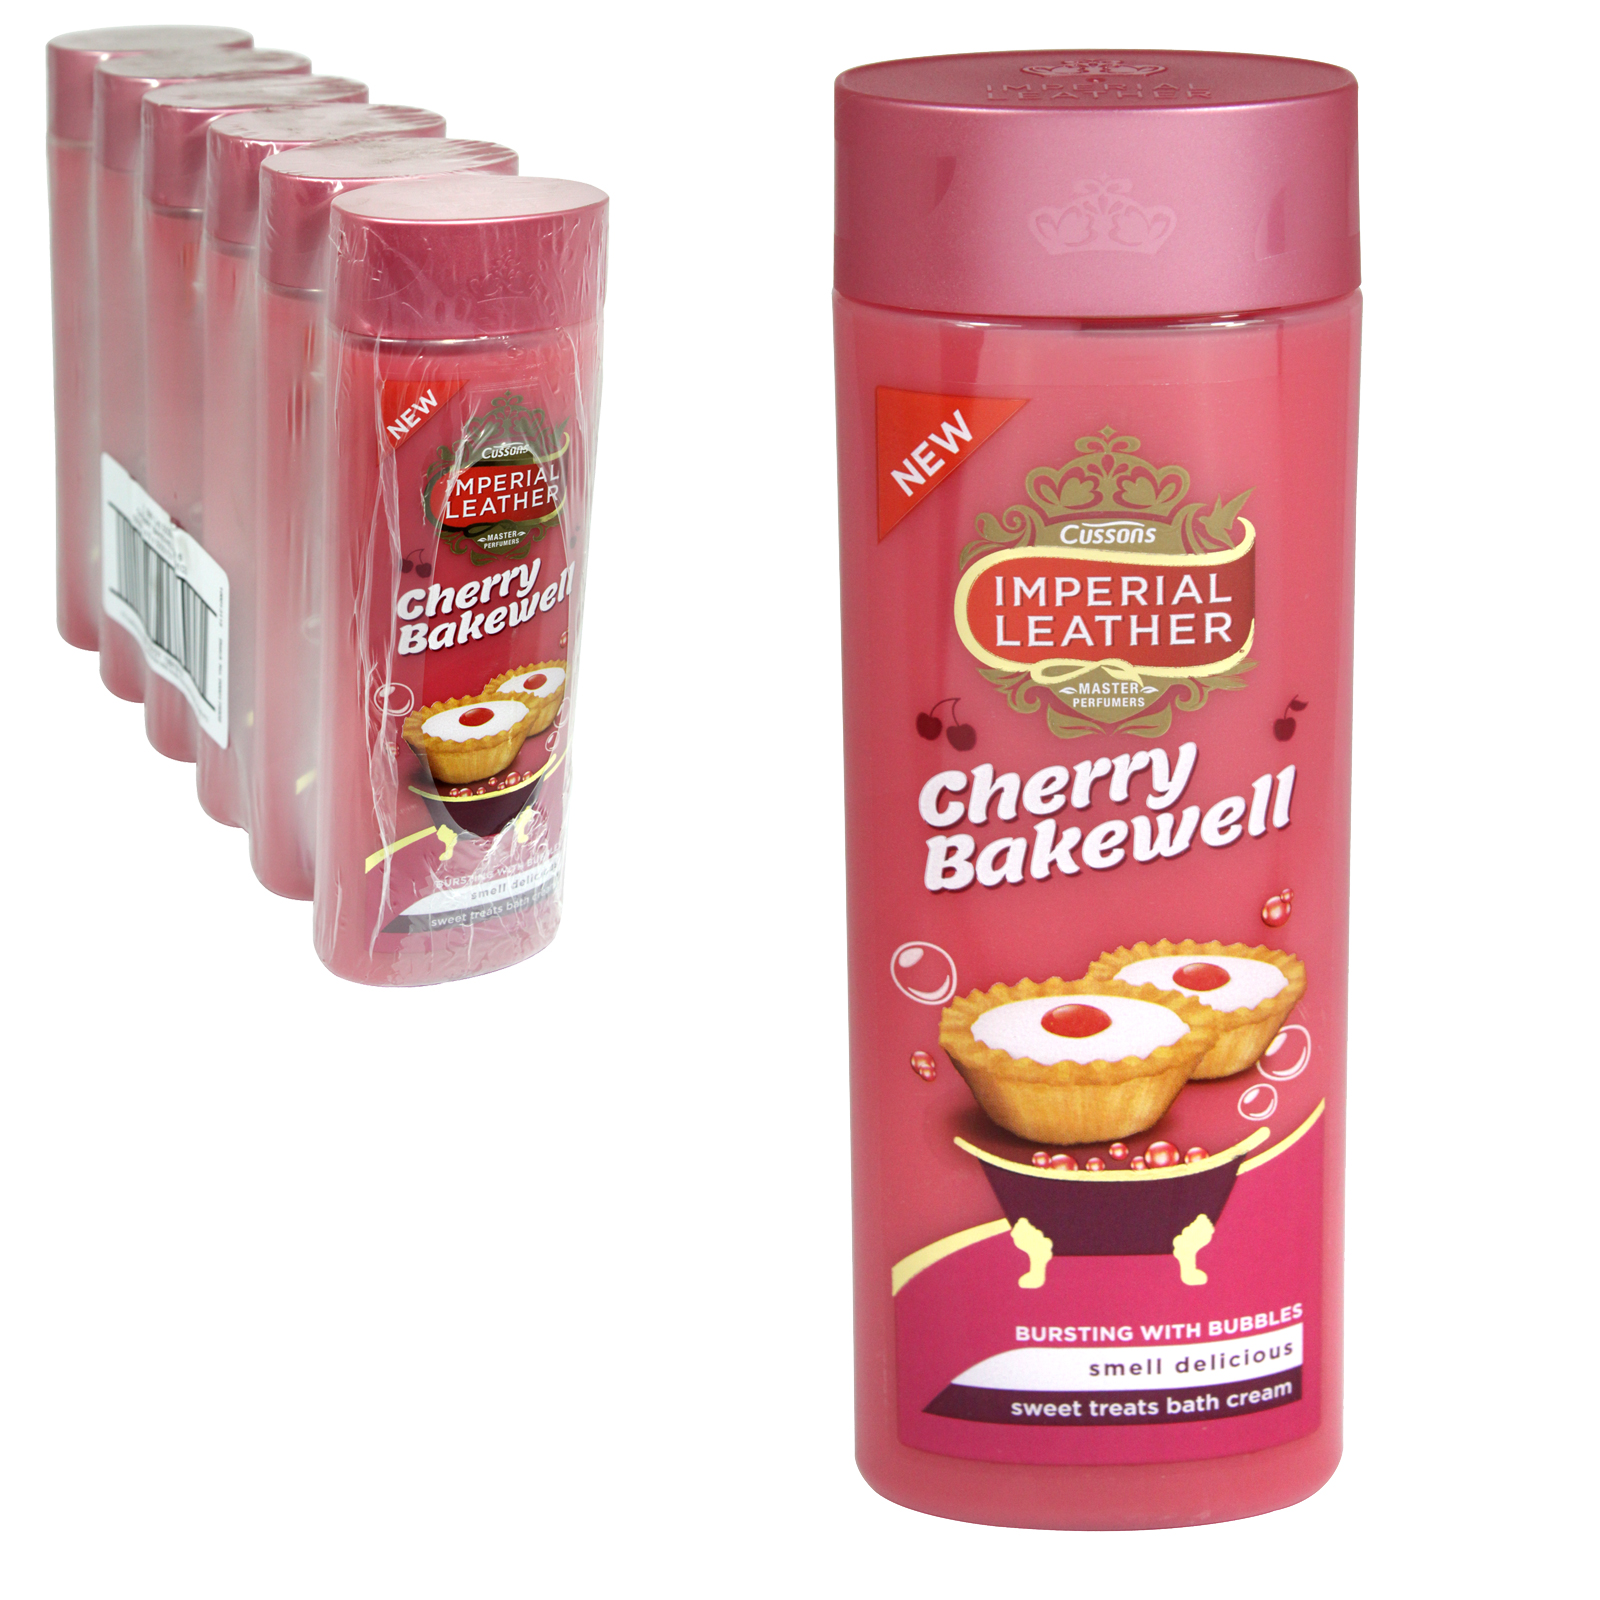 IMPERIAL LEATHER CREME BATH 500ML CHERRY BAKEWELL X6